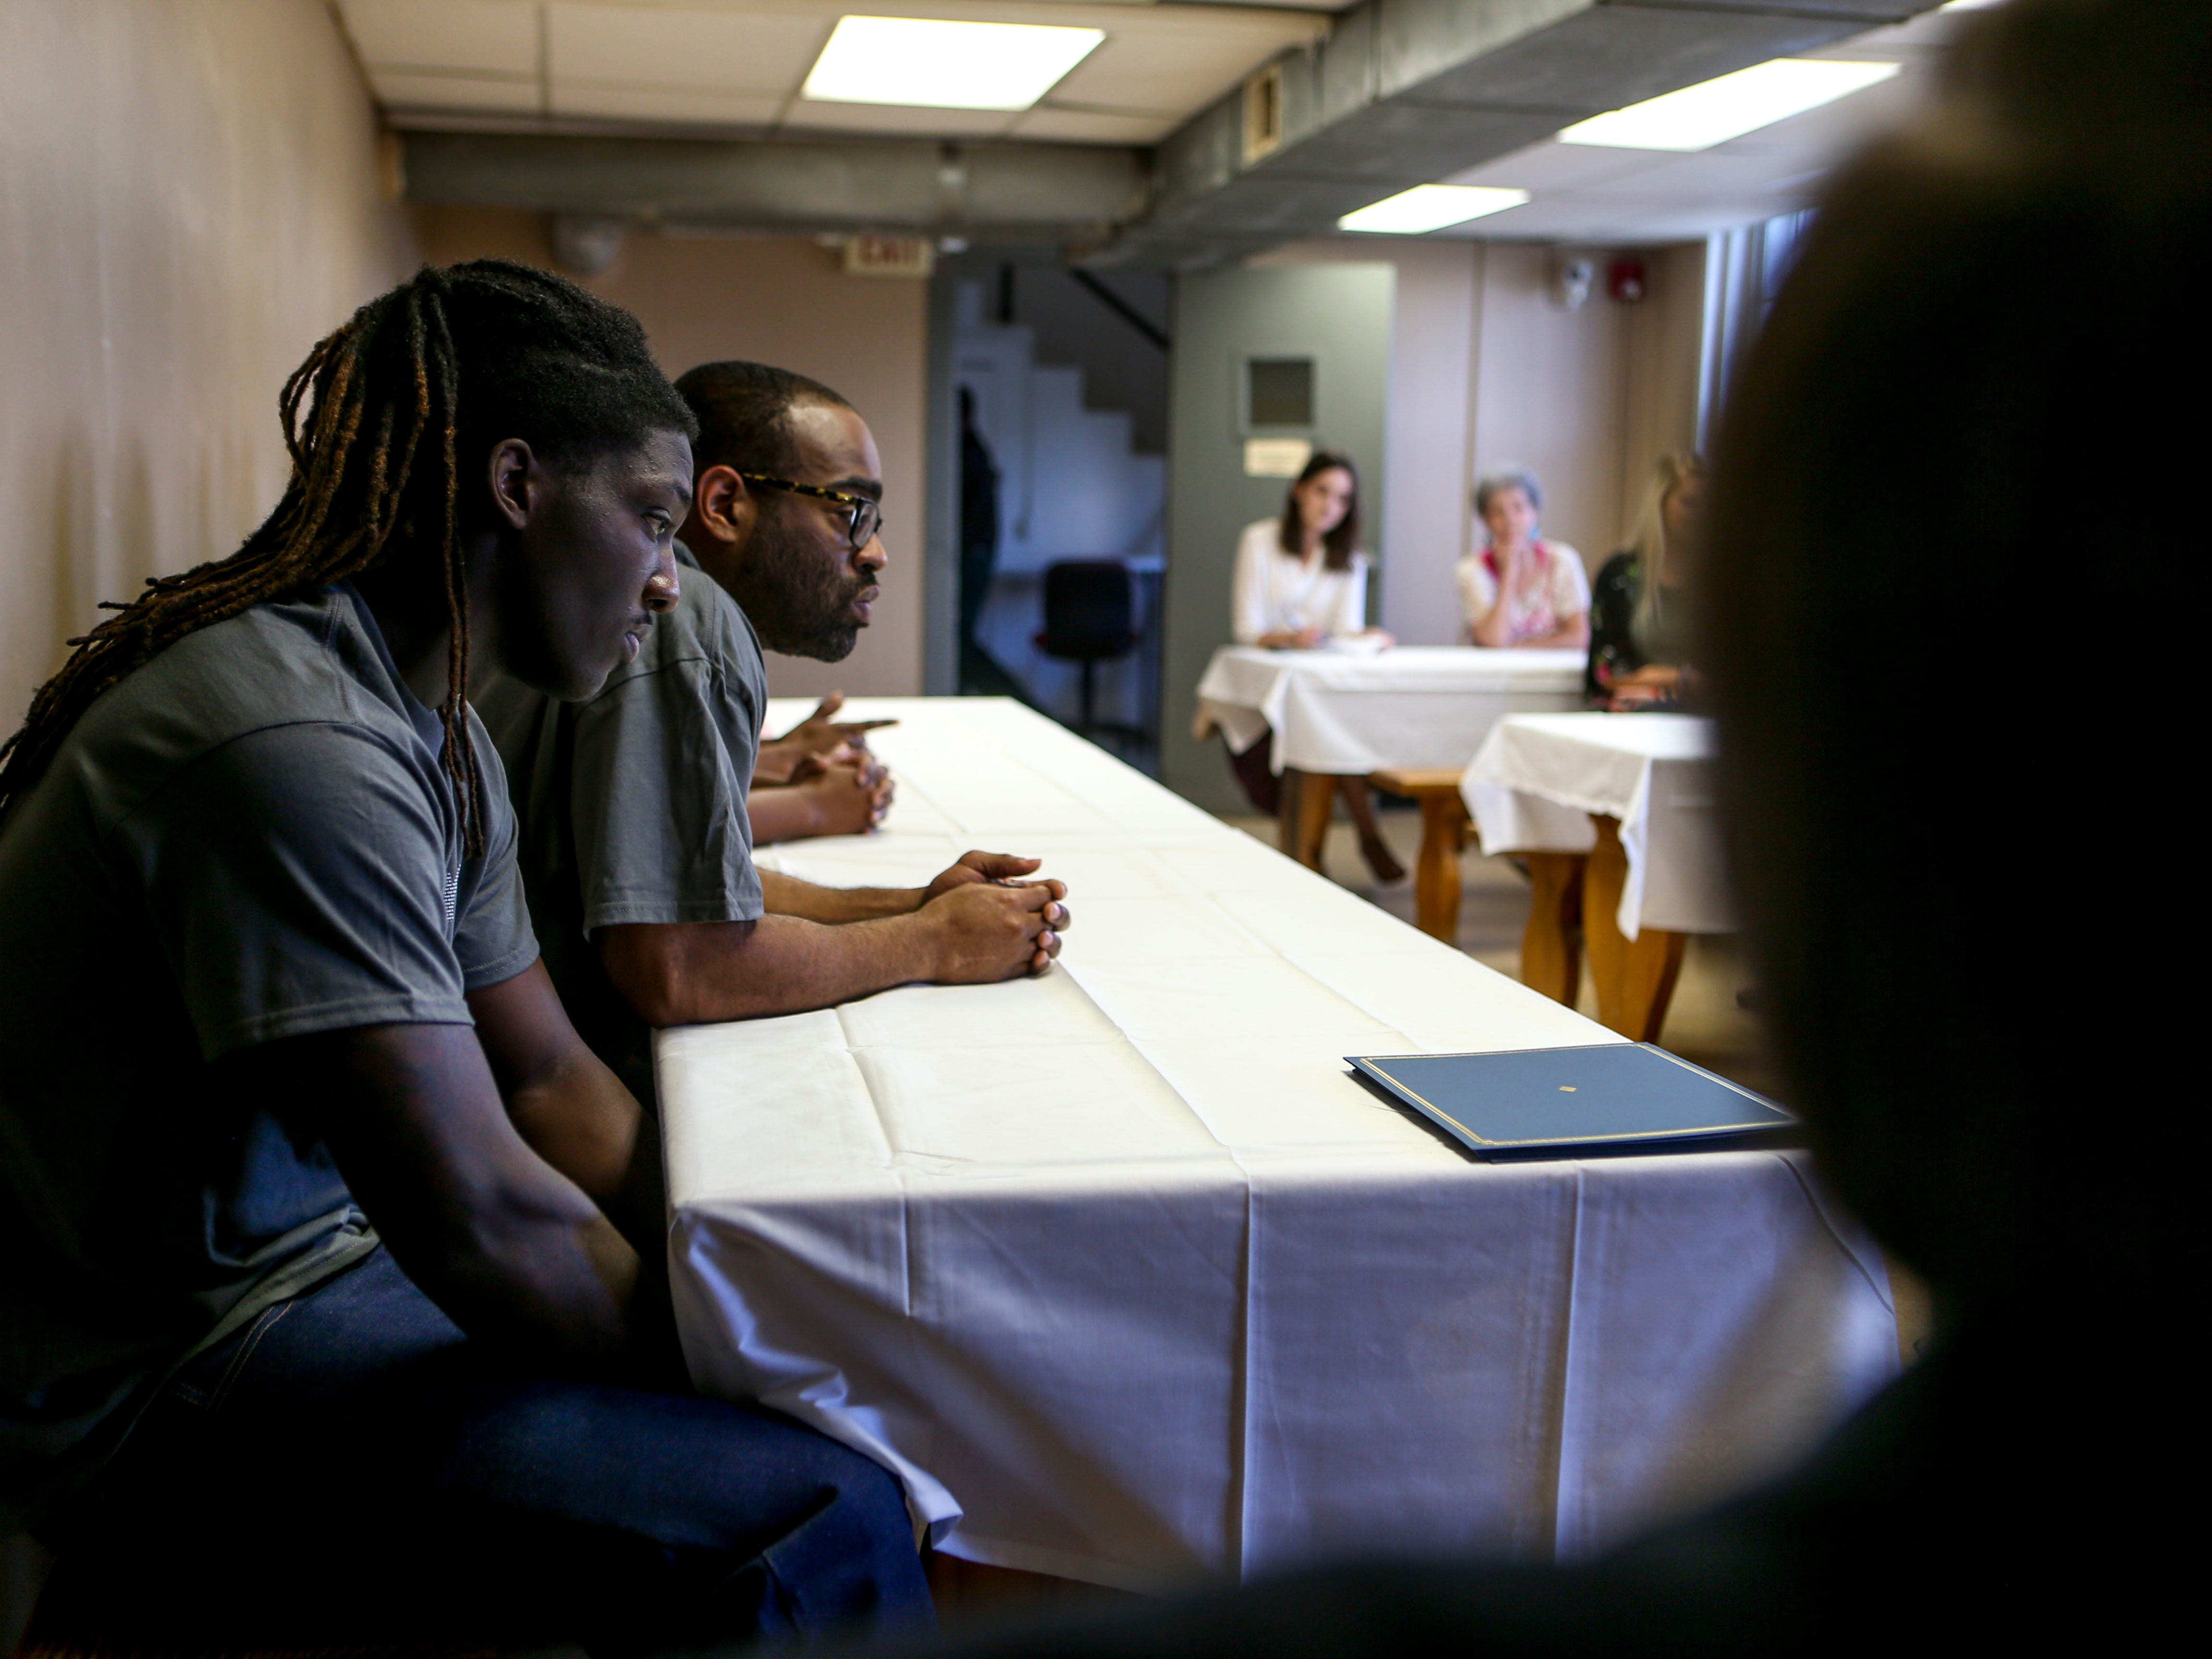 Jarnakin Brown and Carey Demoss listen to program directors speak to those that came in support of graduates during a graduation ceremony for the InsideOut Dad program at Madison County Penal Farm in Jackson, Tenn., on Thursday, Oct. 4, 2018.